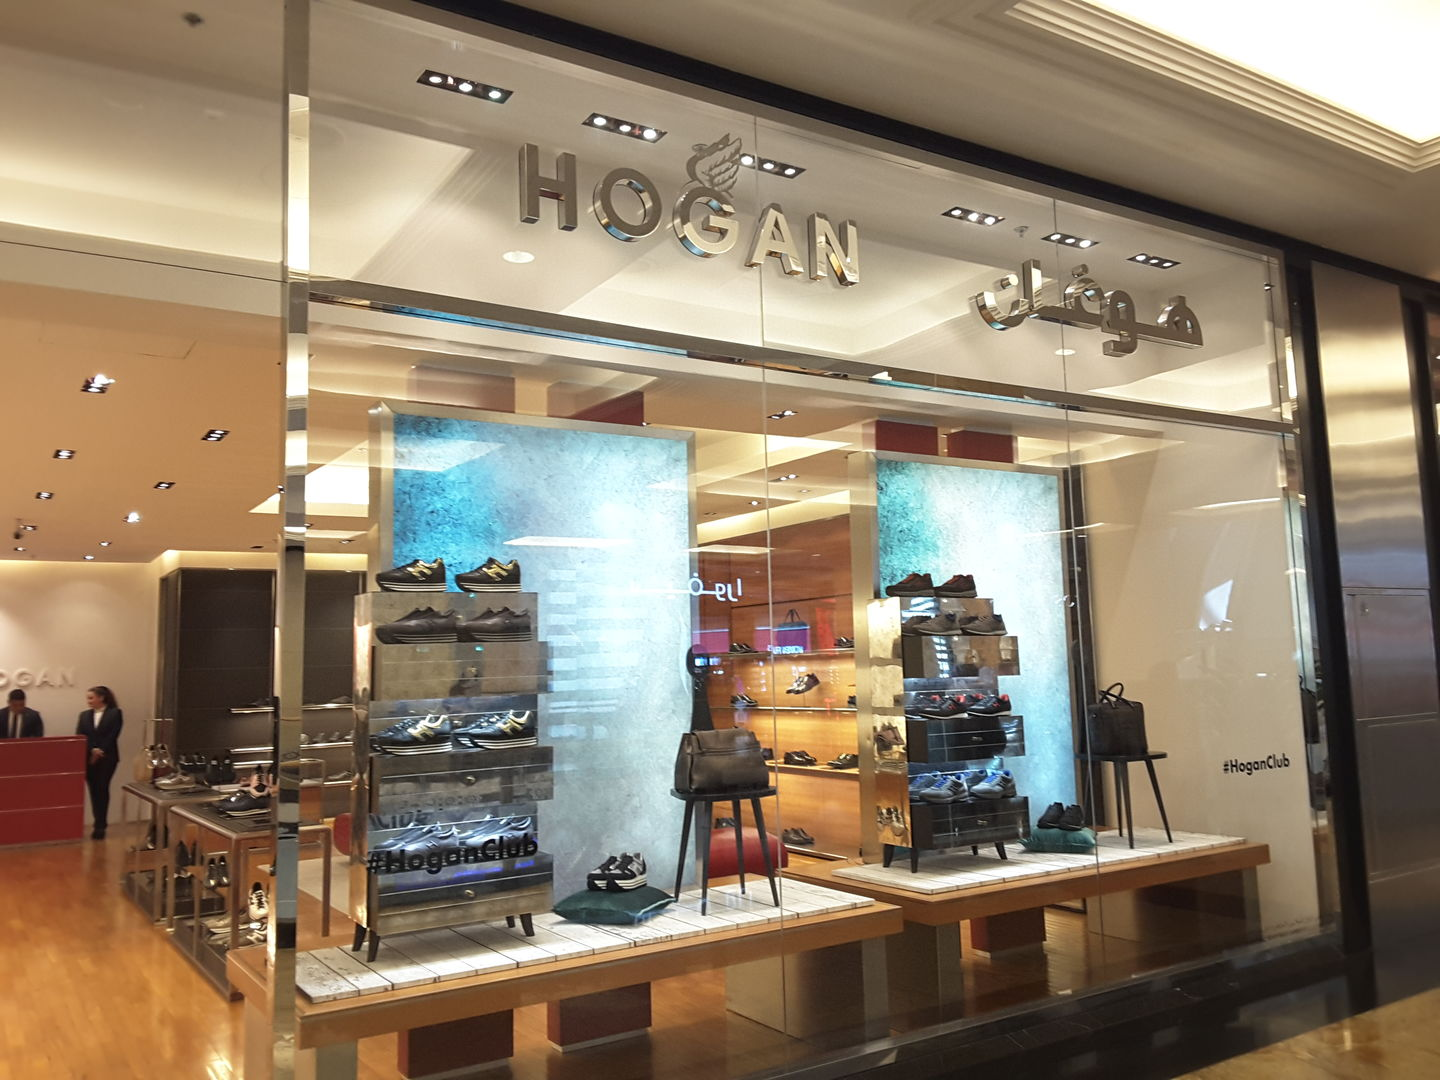 HiDubai-business-hogan-shopping-footwear-al-barsha-1-dubai-2